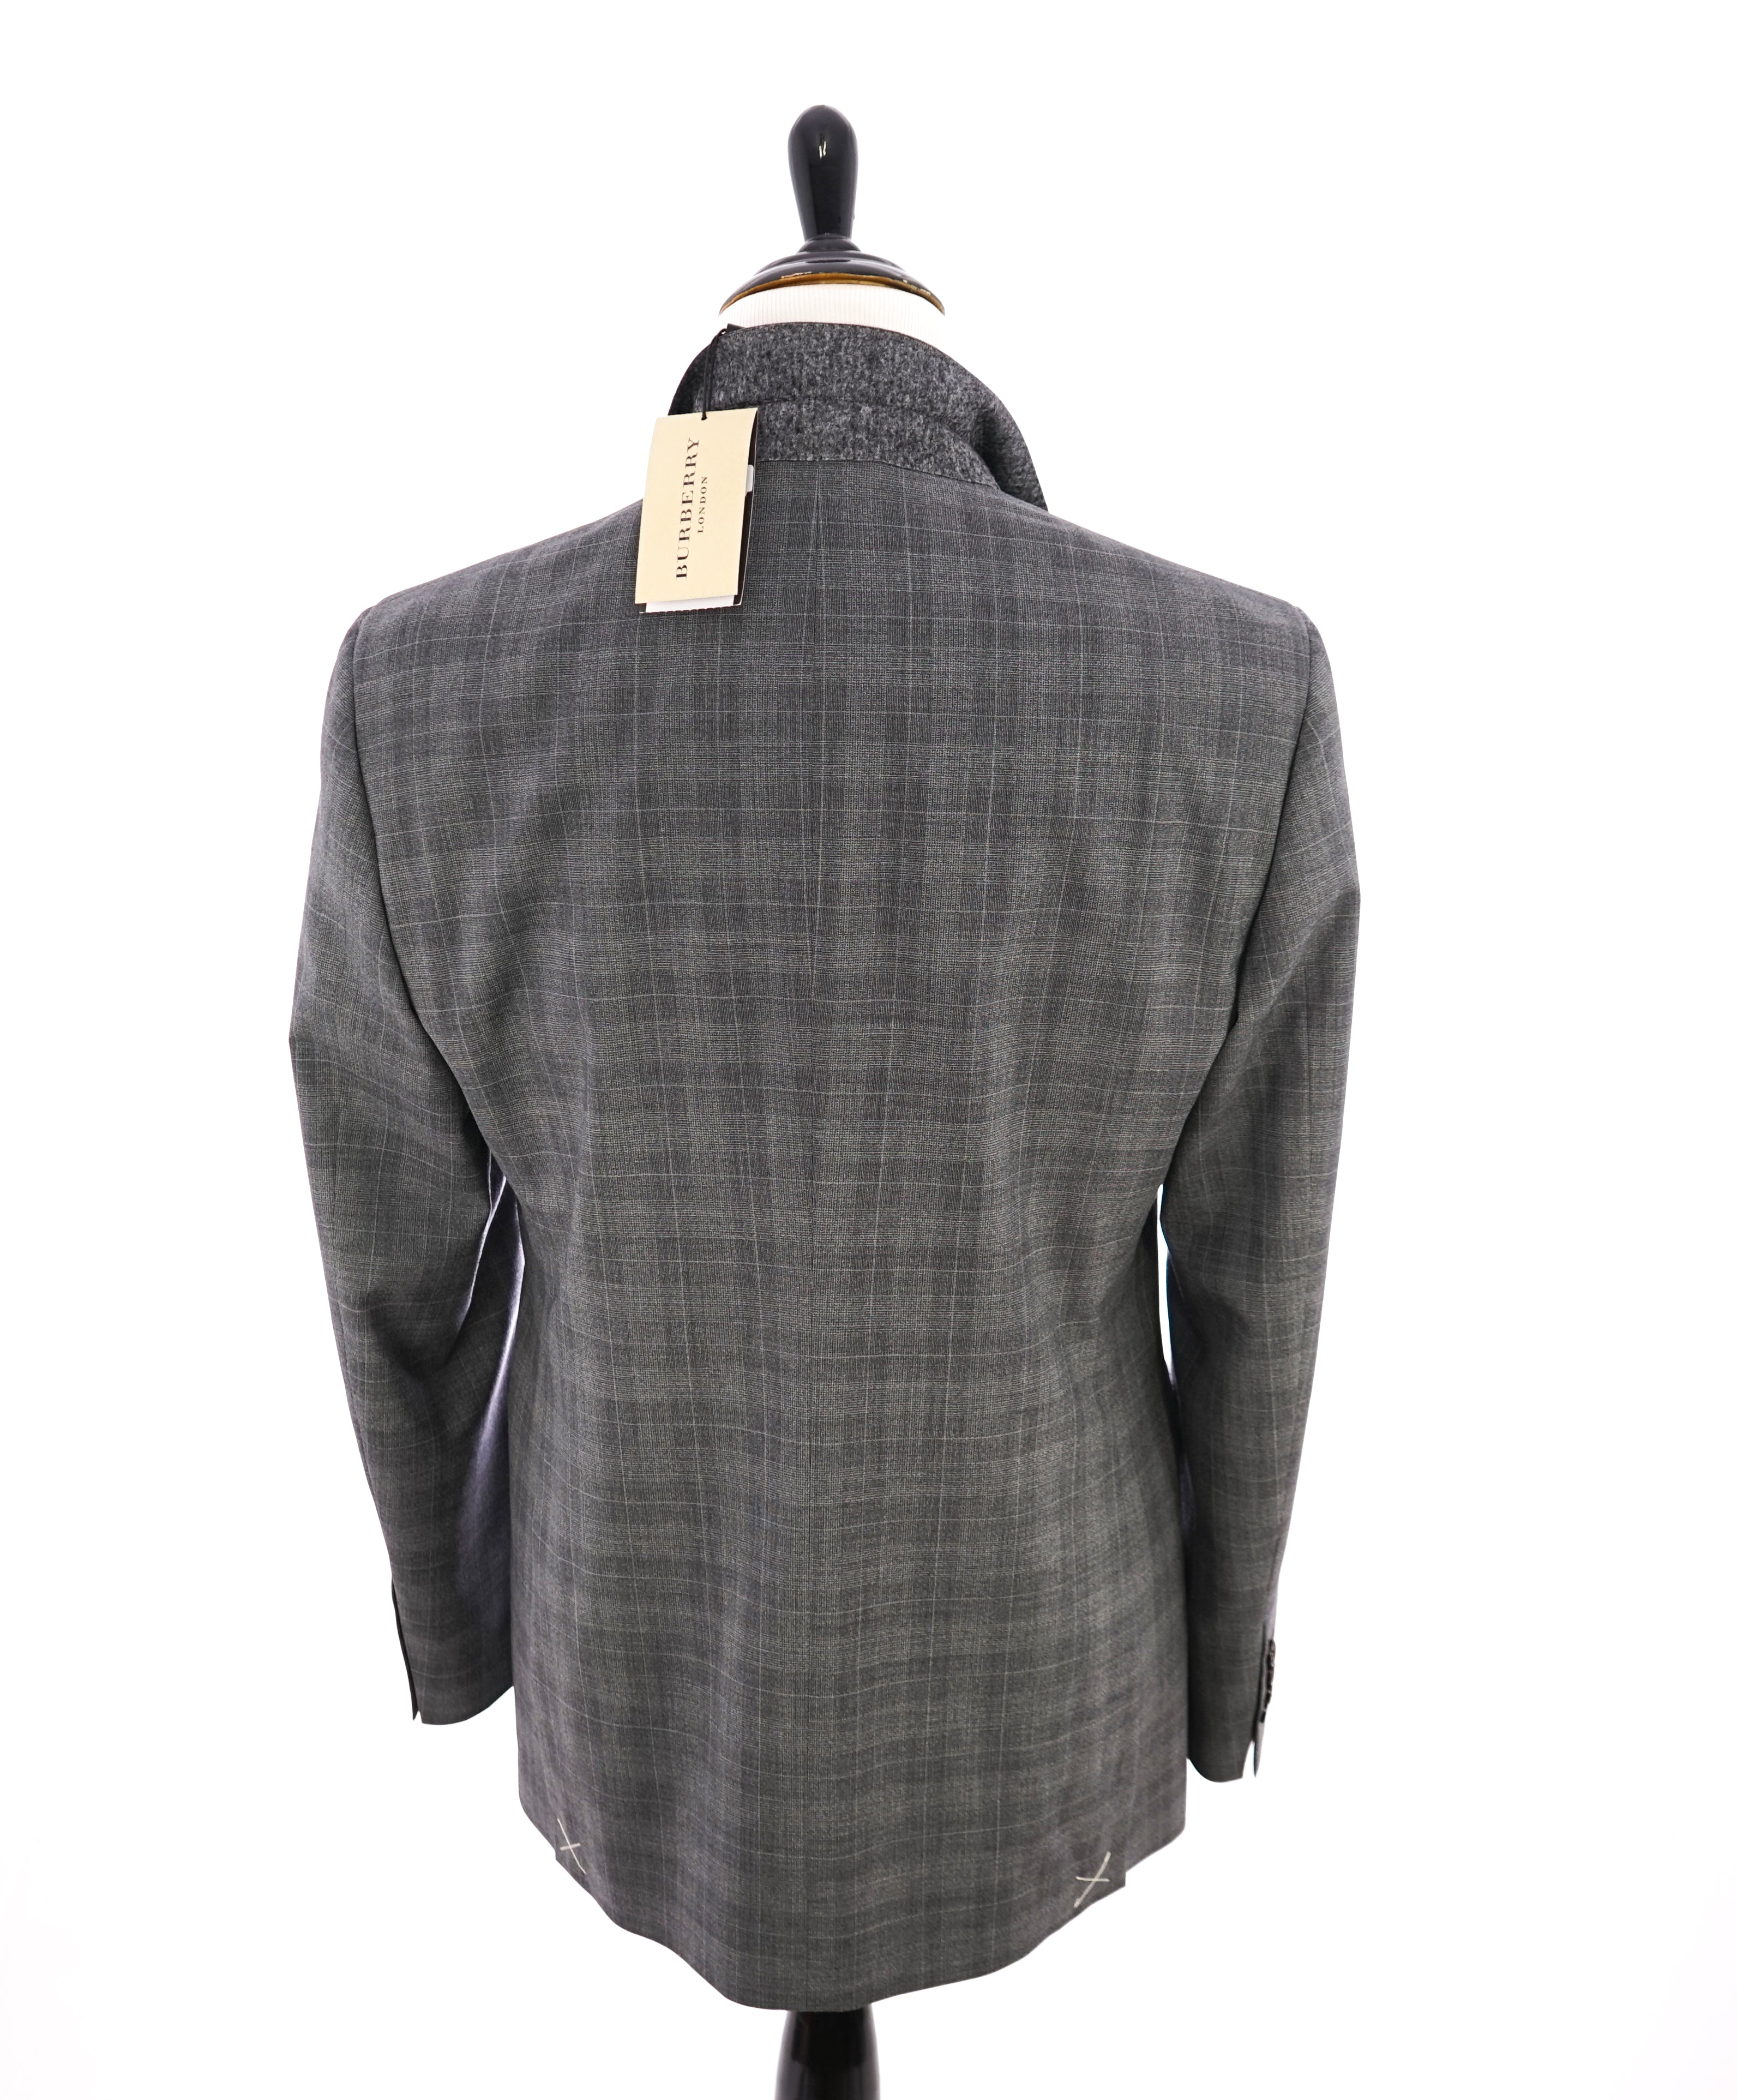 "BURBERRY LONDON - Made In Italy Wool Gray ""Canbury"" Plaid LOGO Suit - 44R"